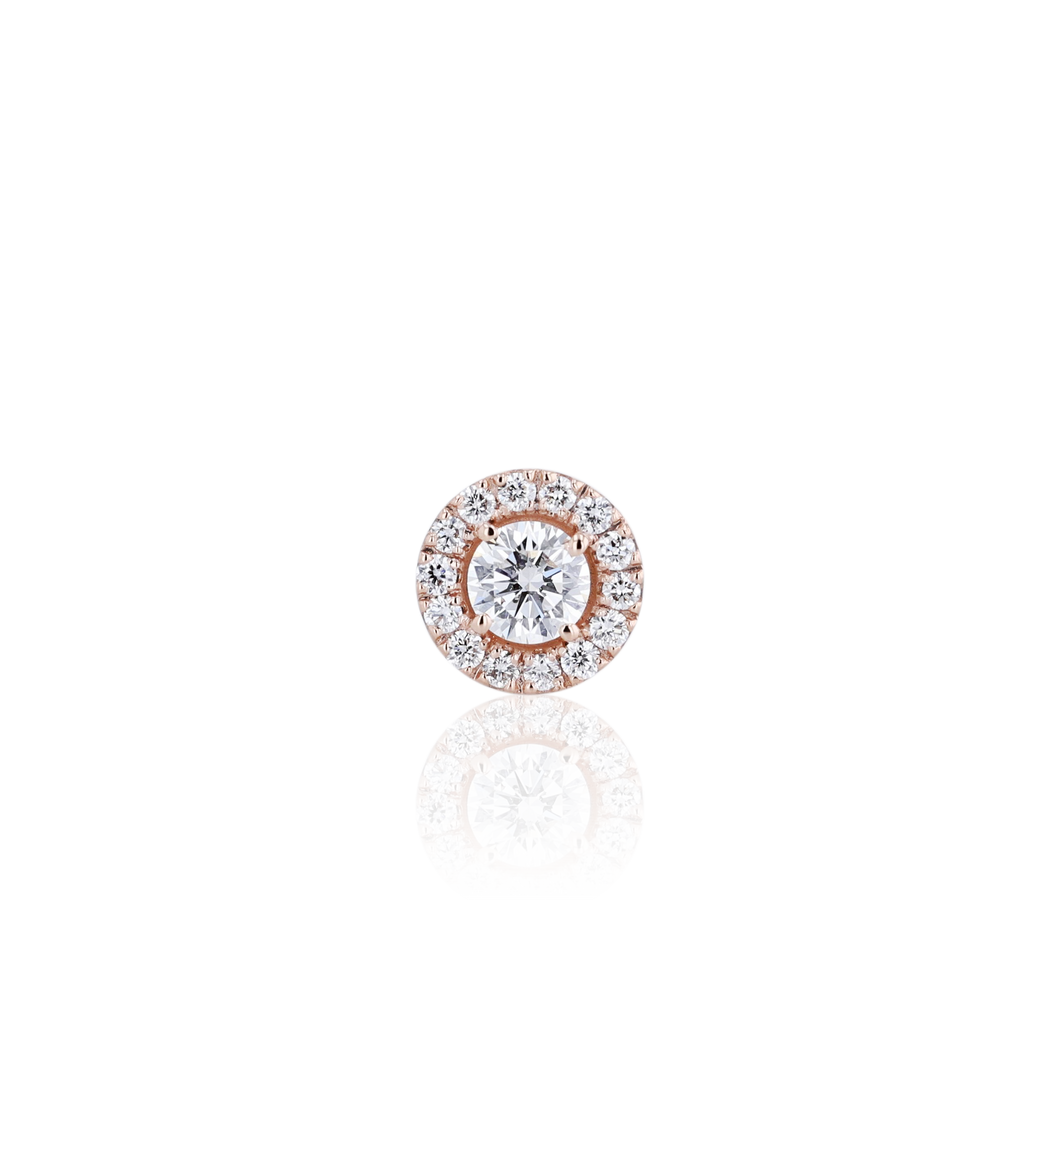 Halo Round Diamond Stud Earrings in 18K Pink Gold 0.68 CT